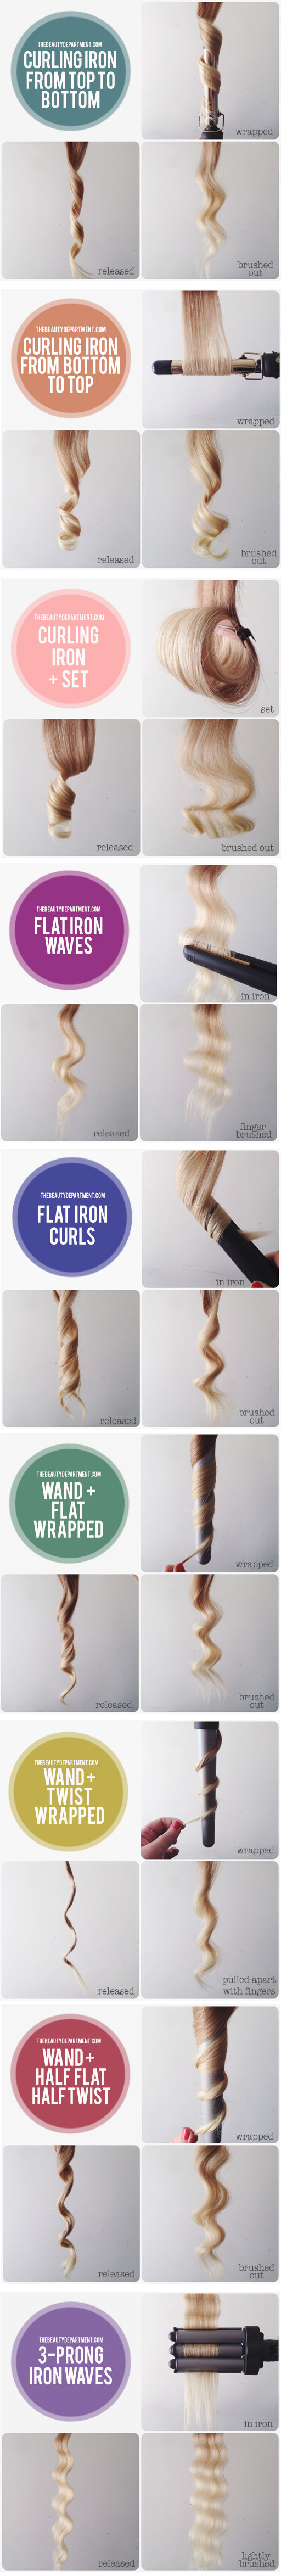 Types of curls - http://thebeautydepartment.com/2014/04/types-of-curl/